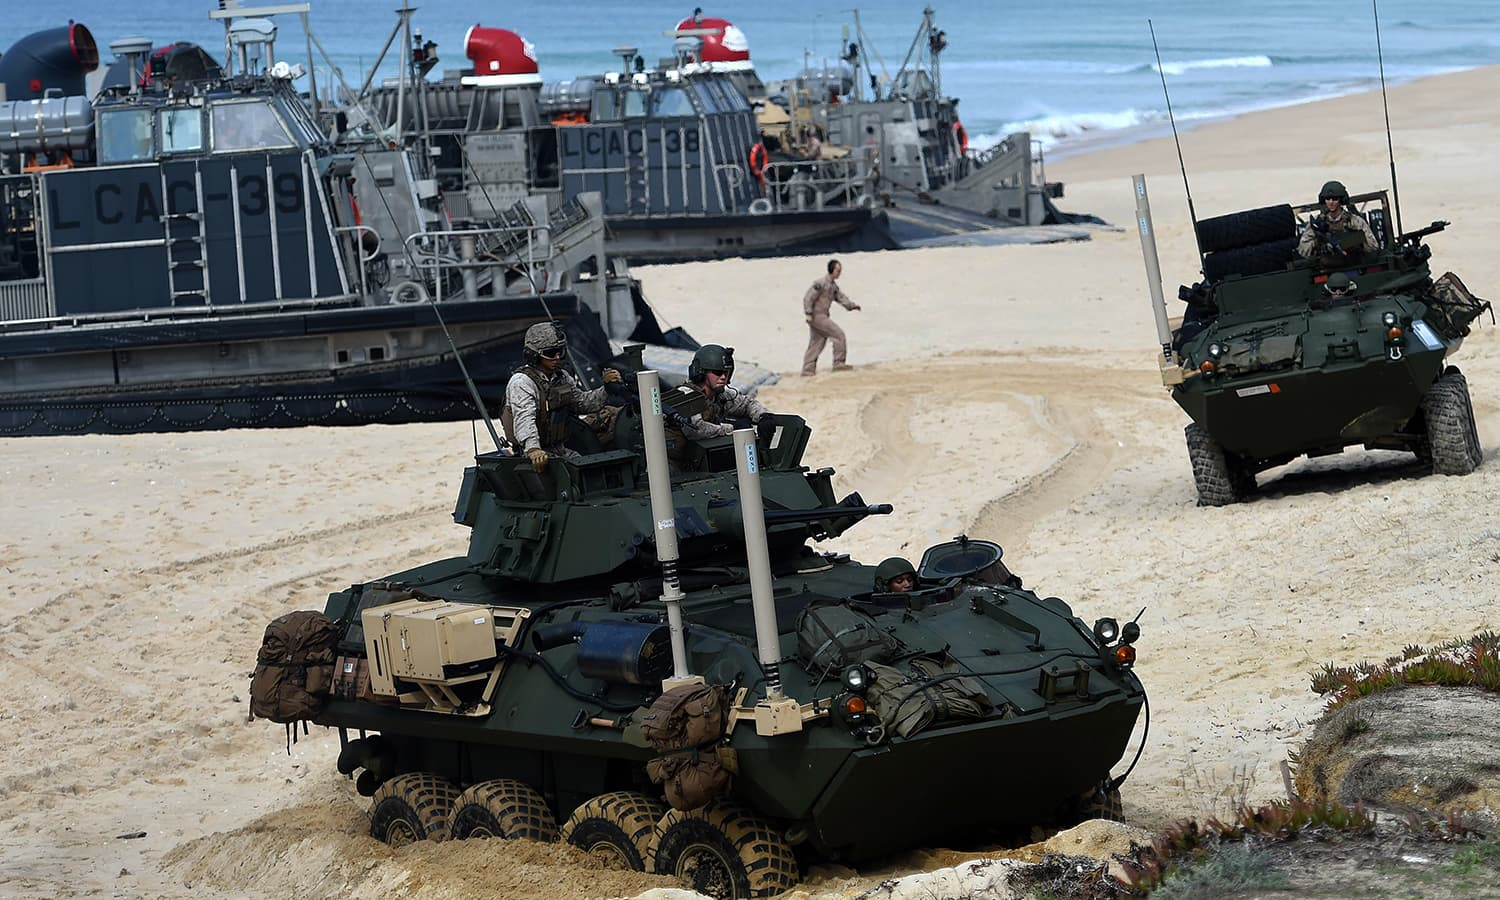 US marines disembark their armoured vehicles from the hovercrafts deployed by the USS Arlington amphibious transport dock during the Nato's Trident Juncture exercise. — AFP